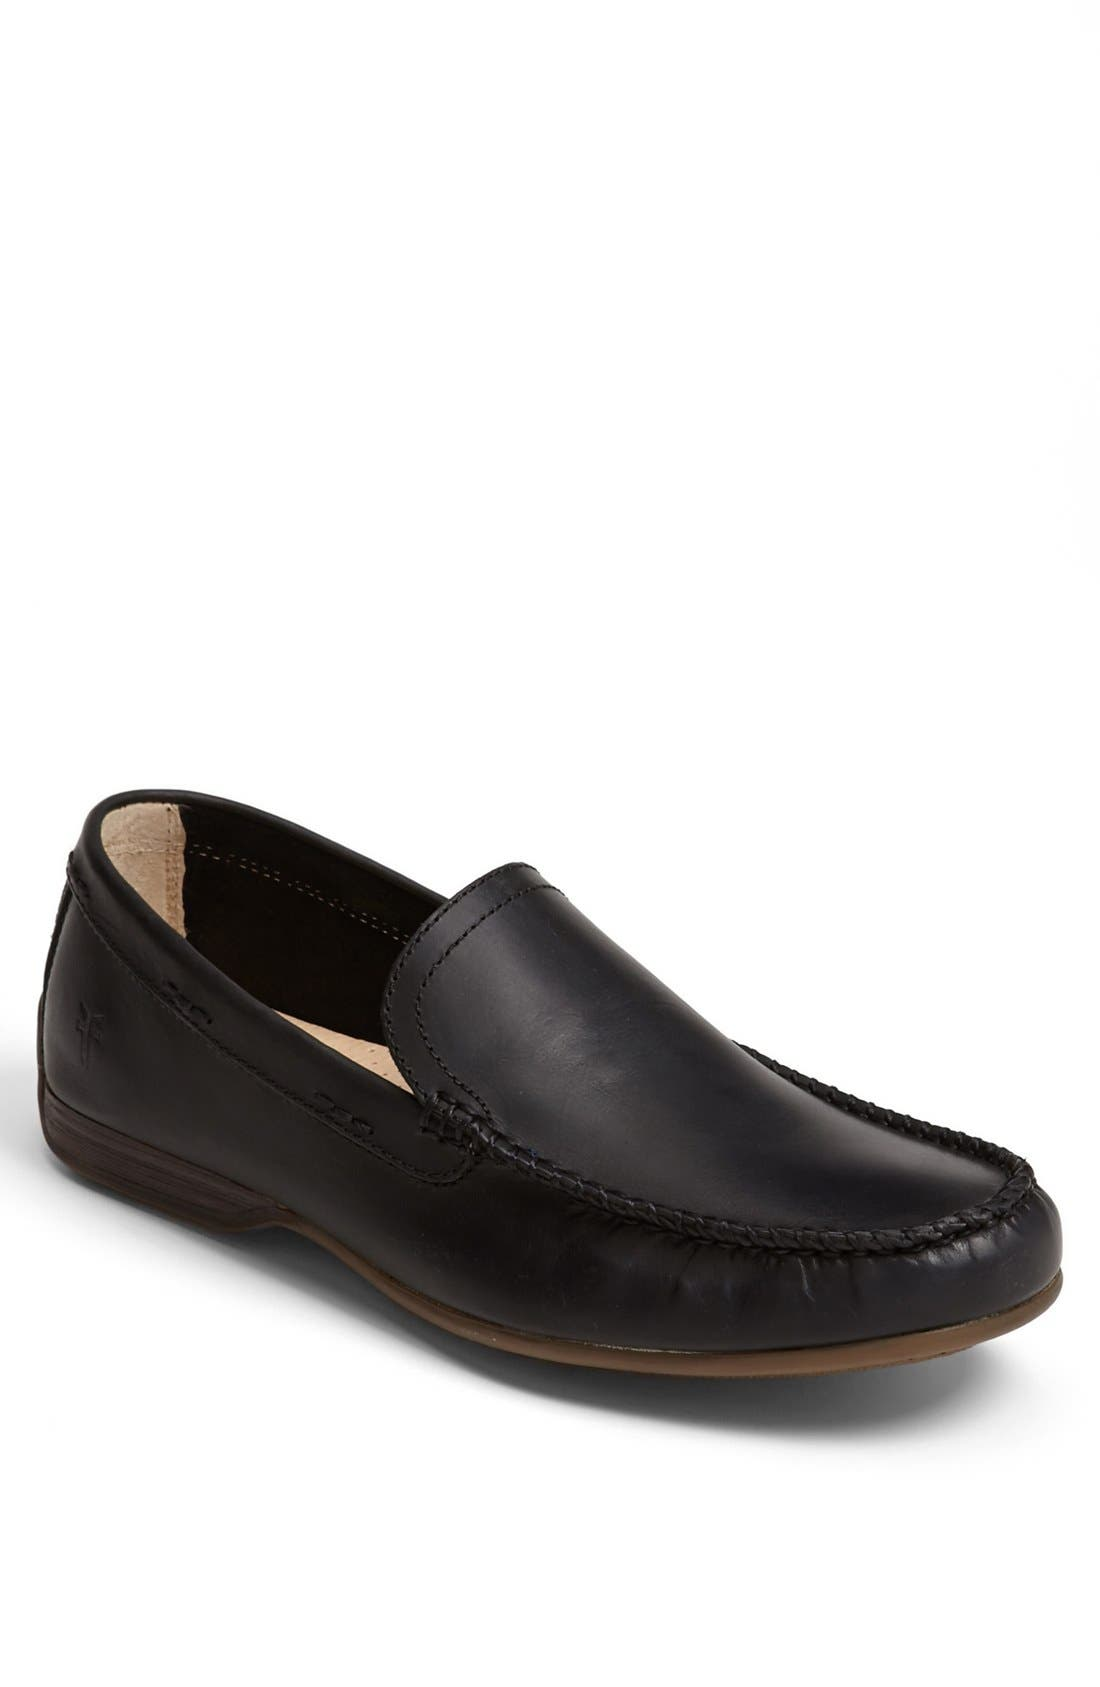 Buying New Frye Herren Oxfords & Derby Schuhe Frye Sam Derby